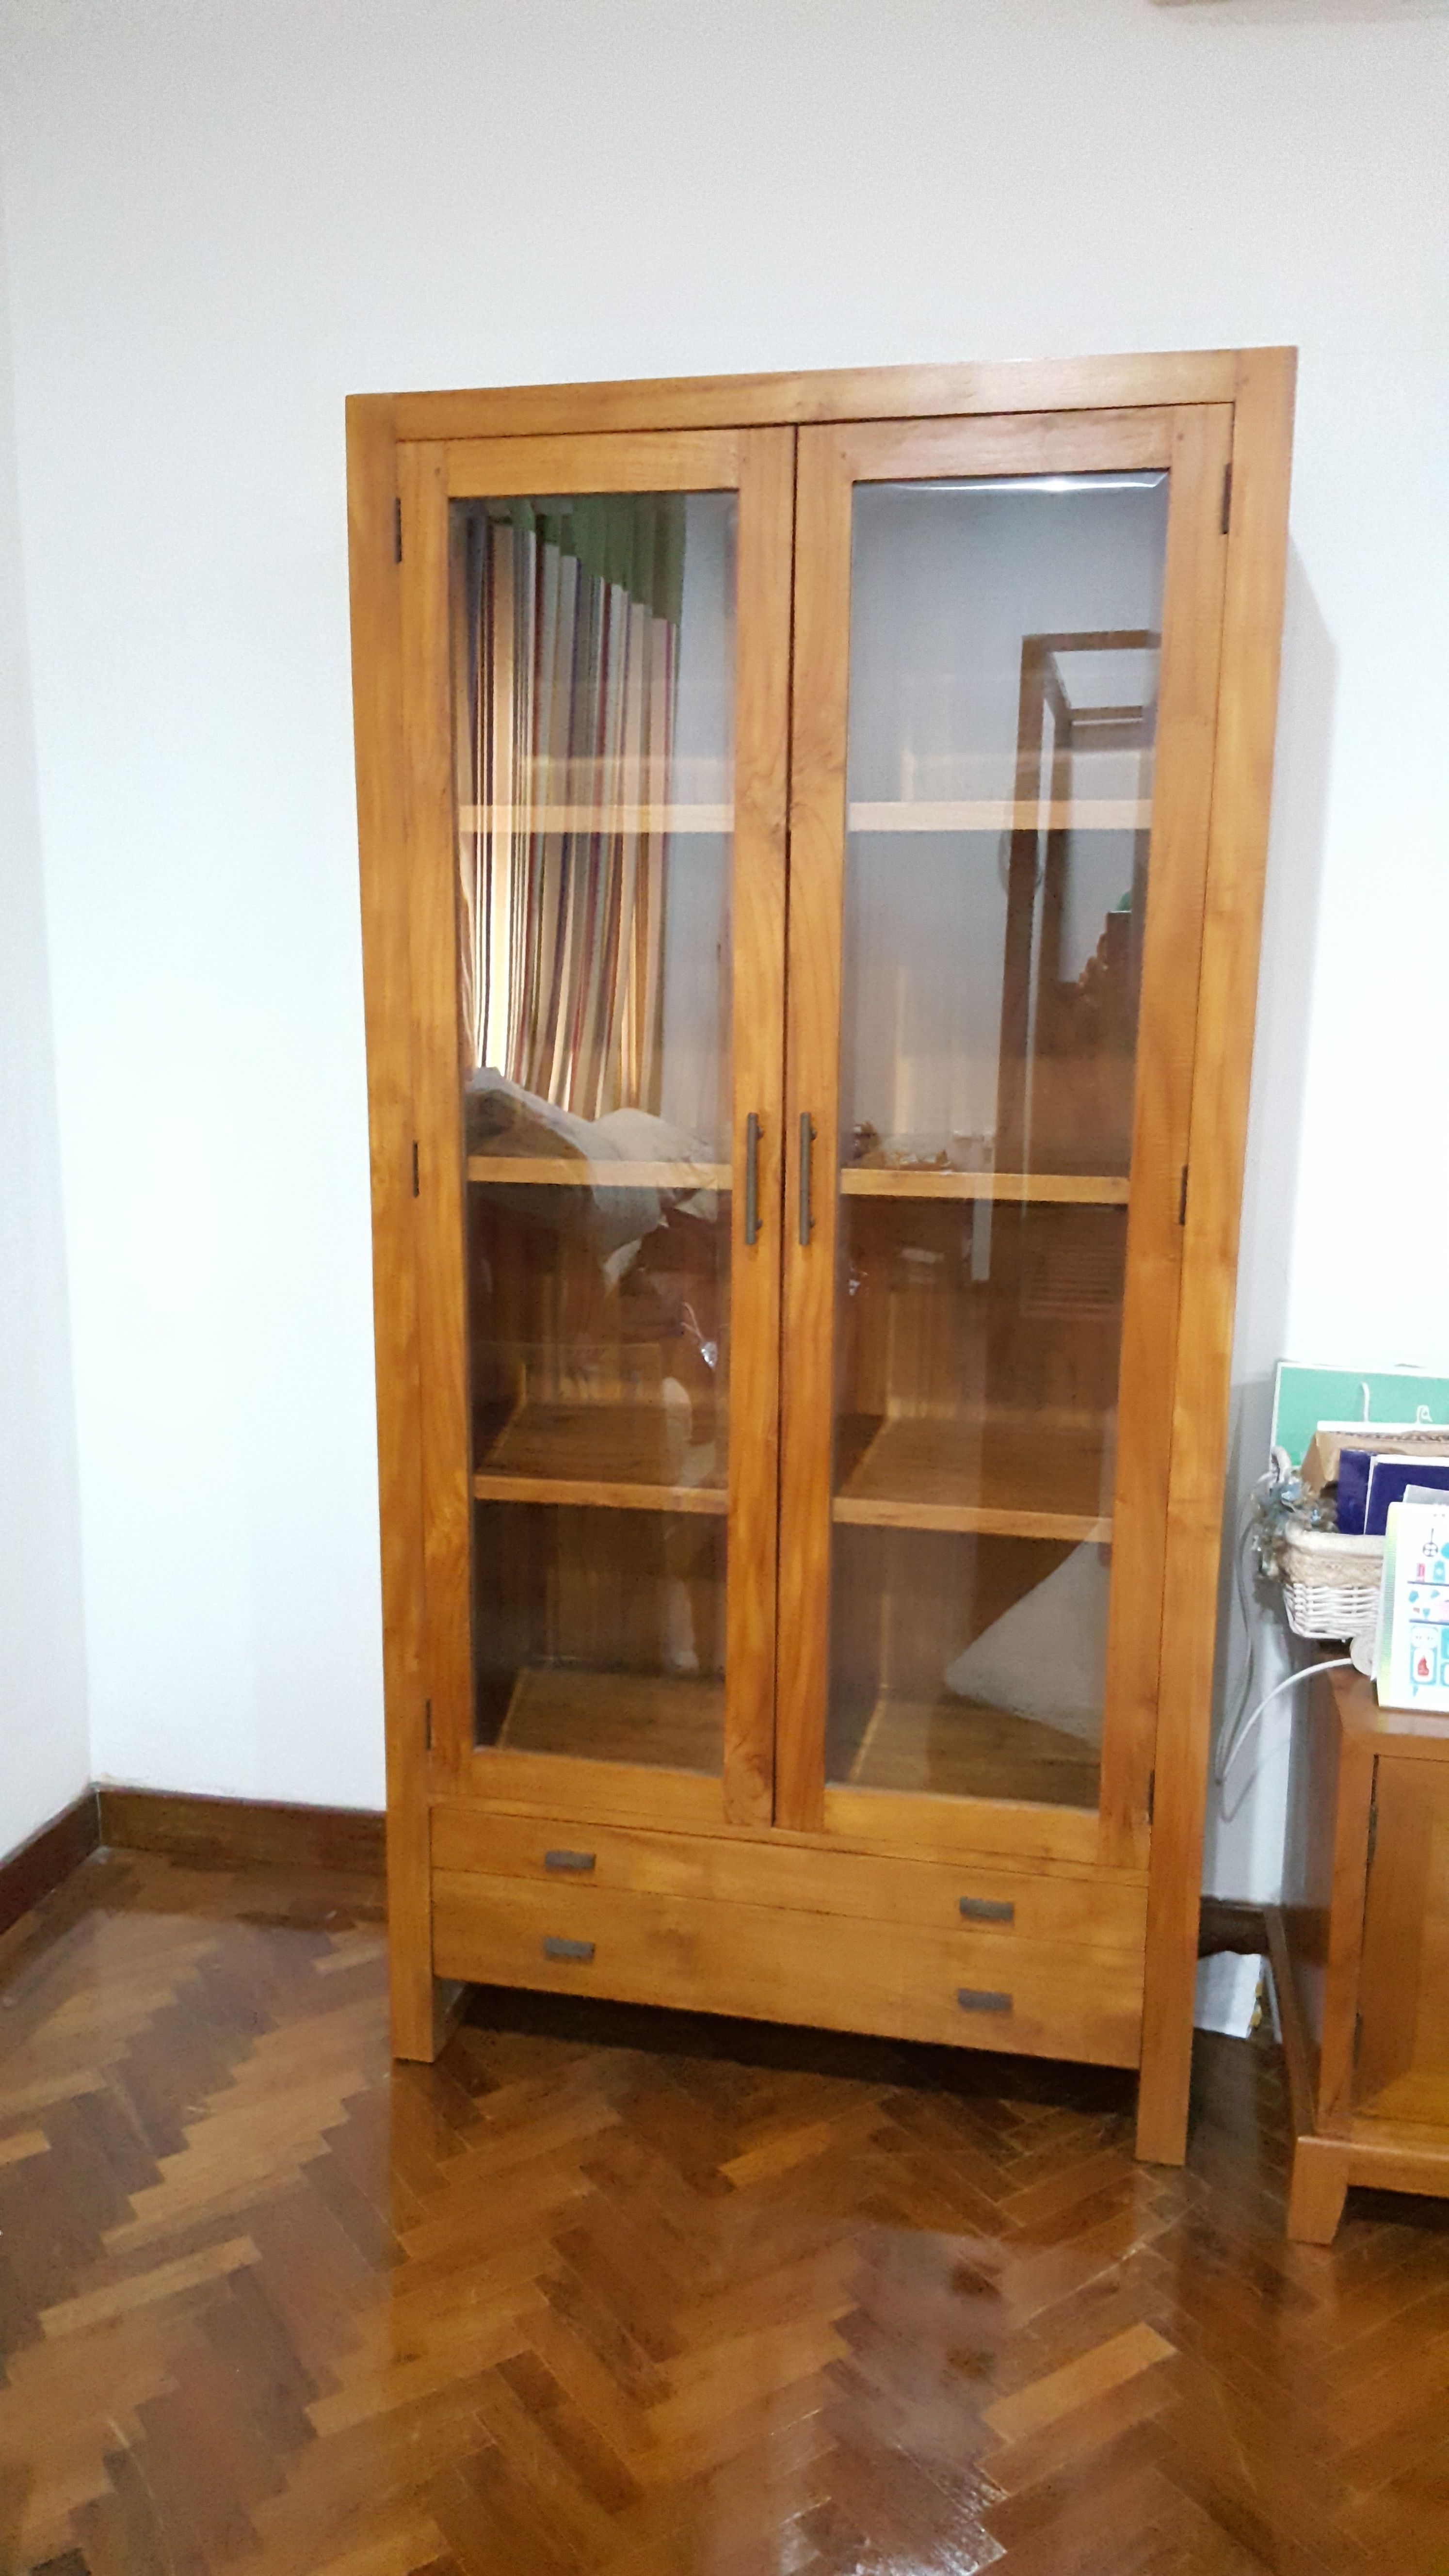 This Two Unit Teak Wood Display Cabinet With Glass Doors In The